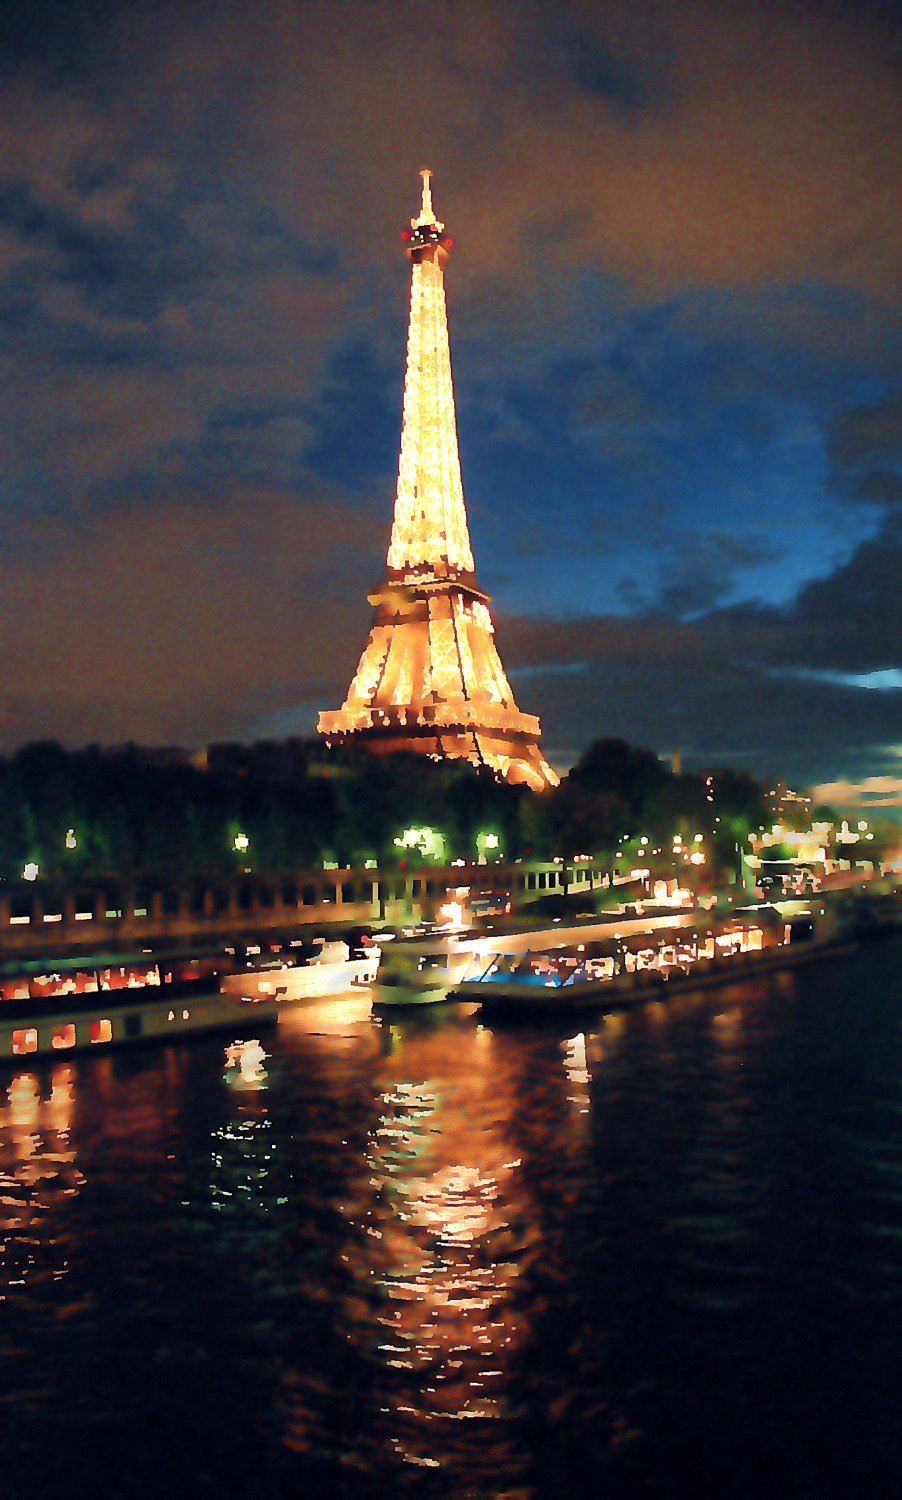 - Night on the Seine - Techno-Impressionist Museum - Techno-Impressionism - art - beautiful - photo photography picture - by Tony Karp